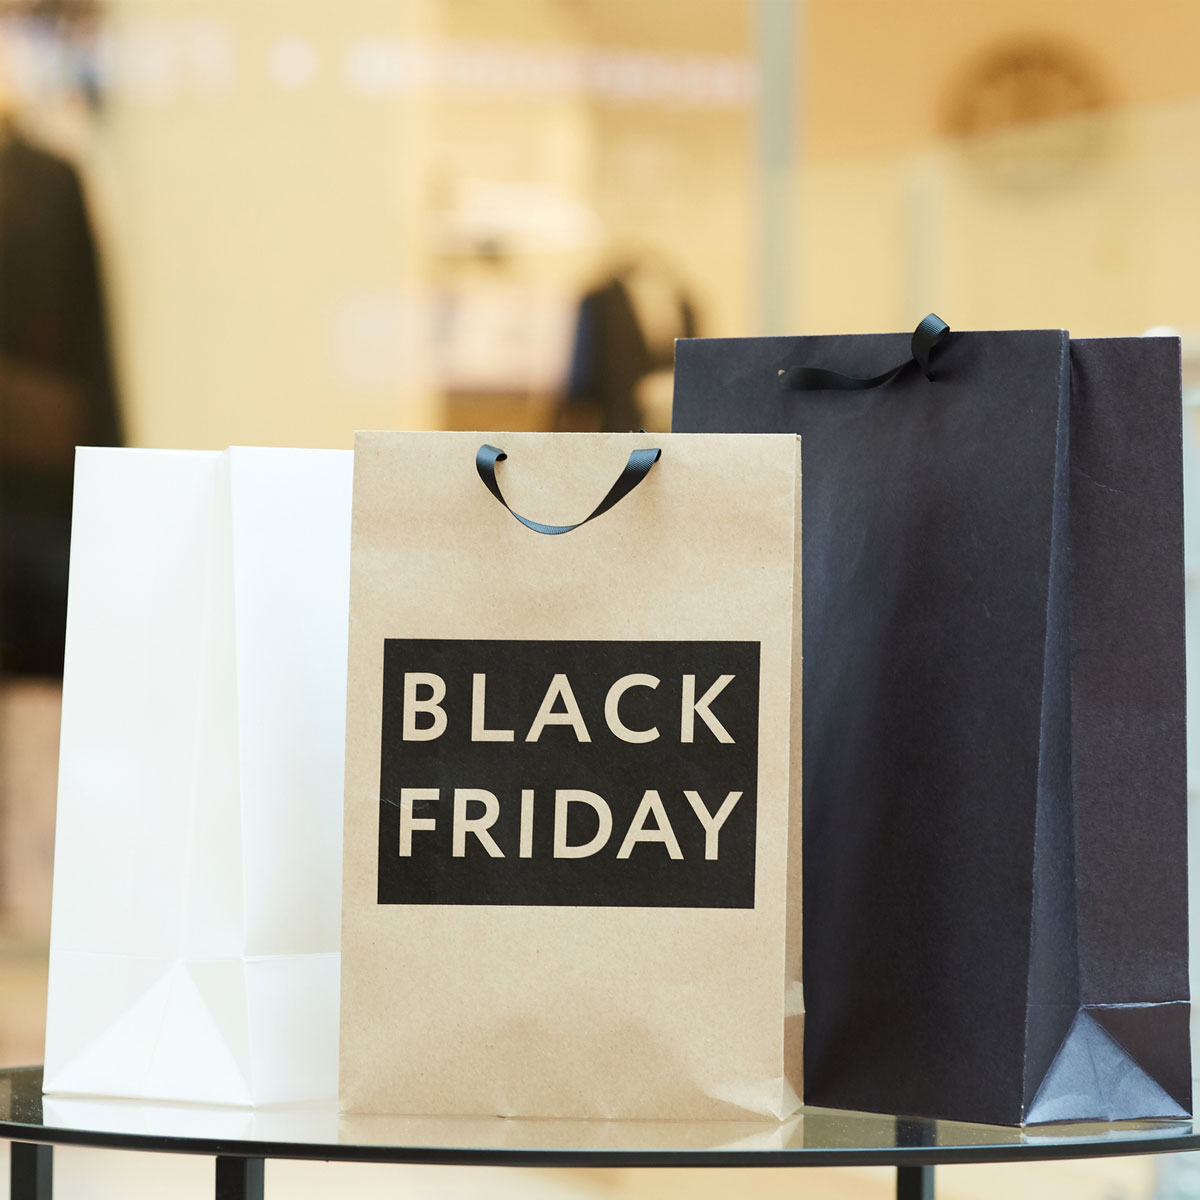 Black Friday, gli italiani spenderanno in media 116 euro